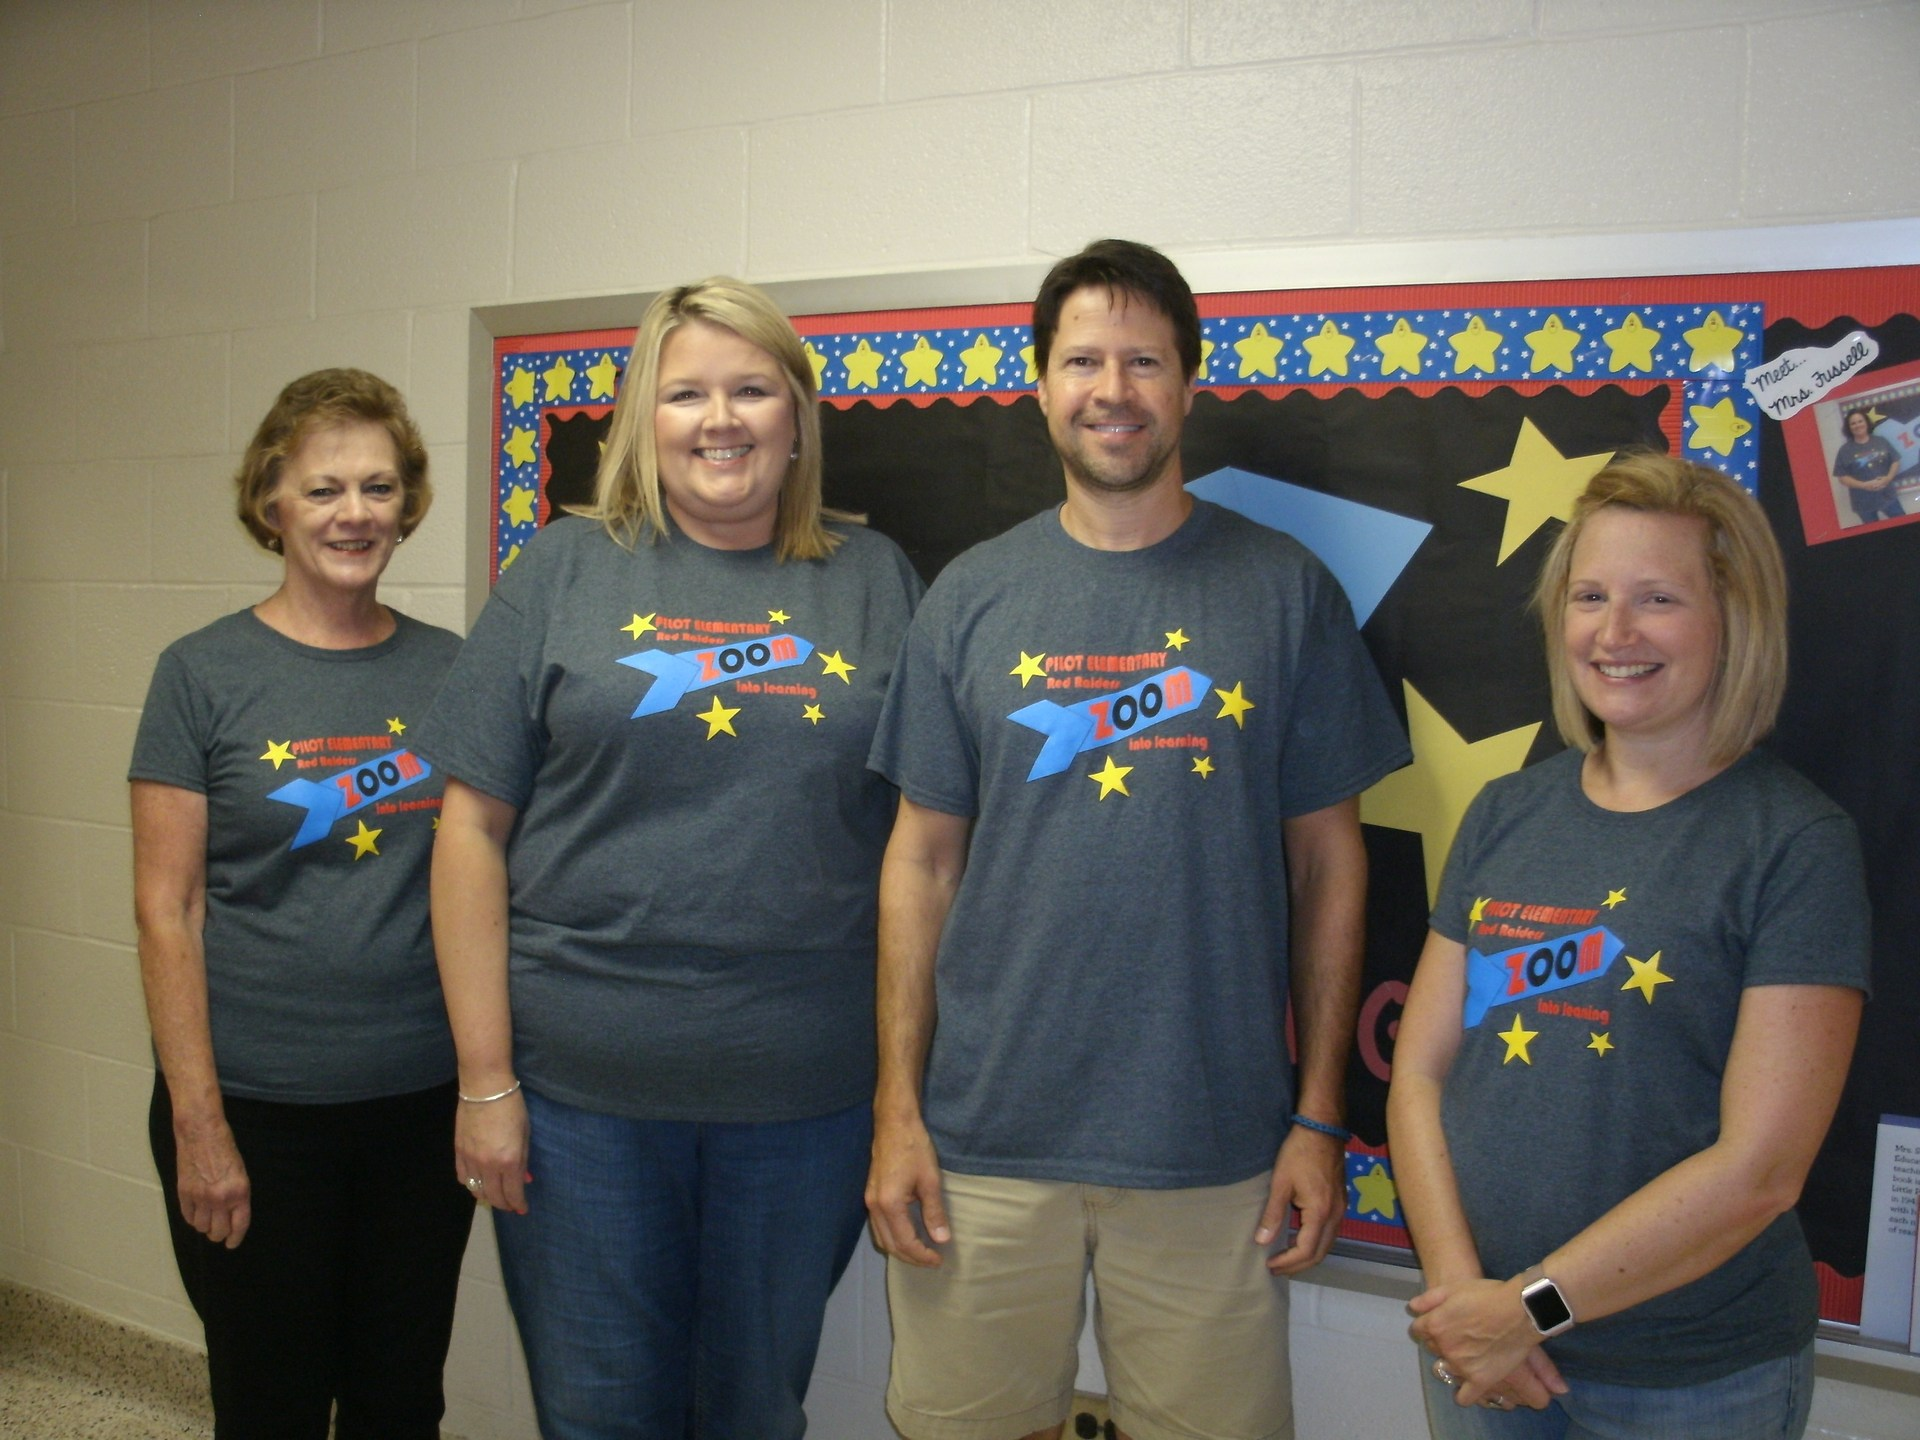 Four third grade teachers are standing in front of a bulletin board.